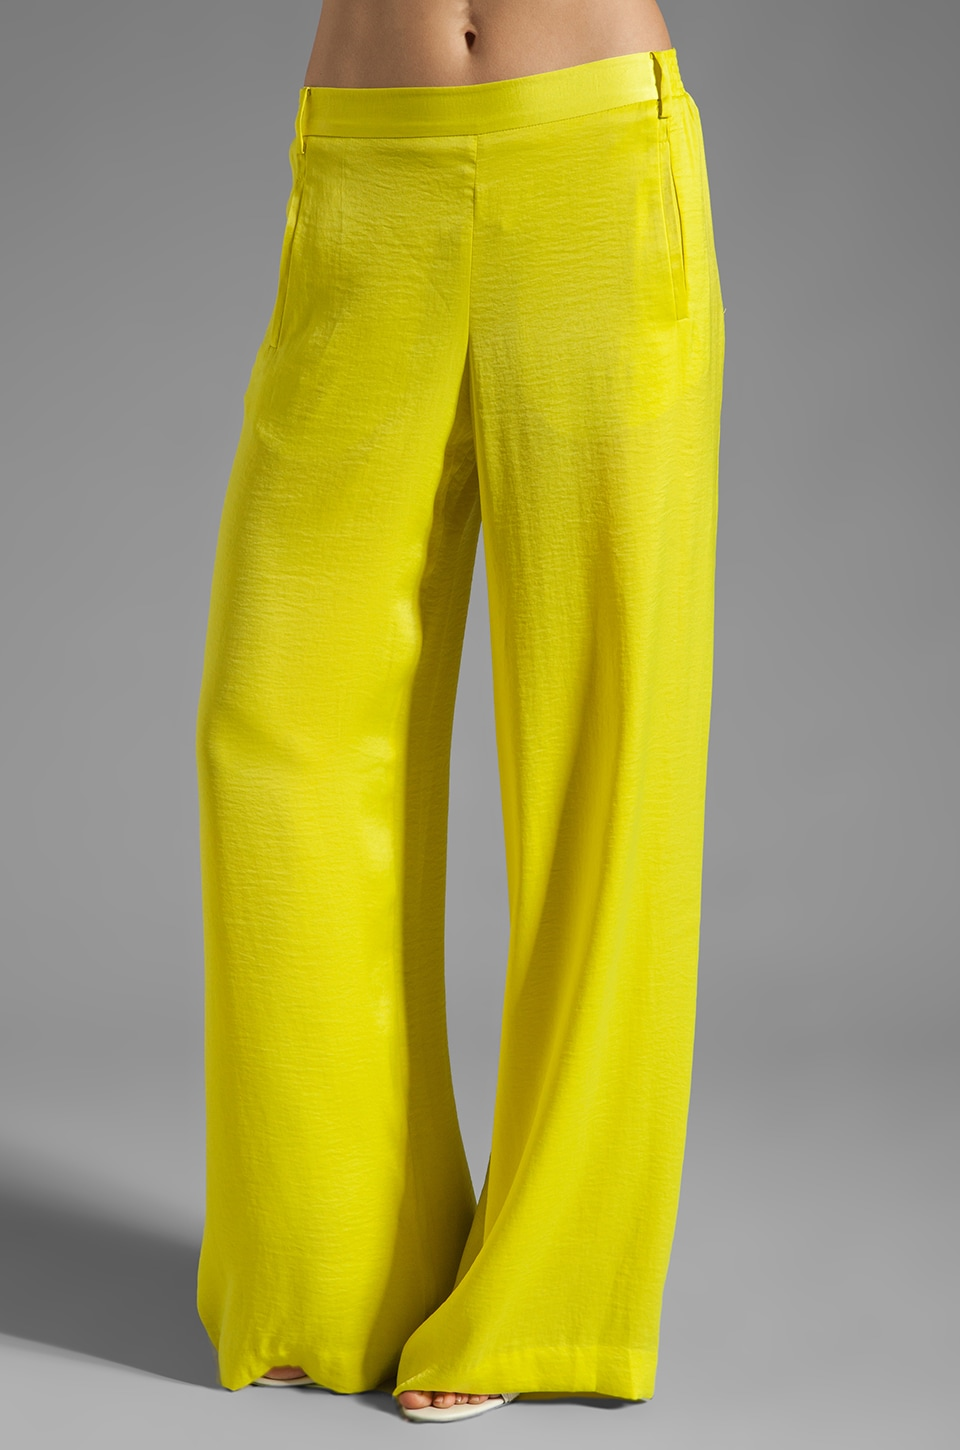 BCBGMAXAZRIA Lounge Pant in Lemon